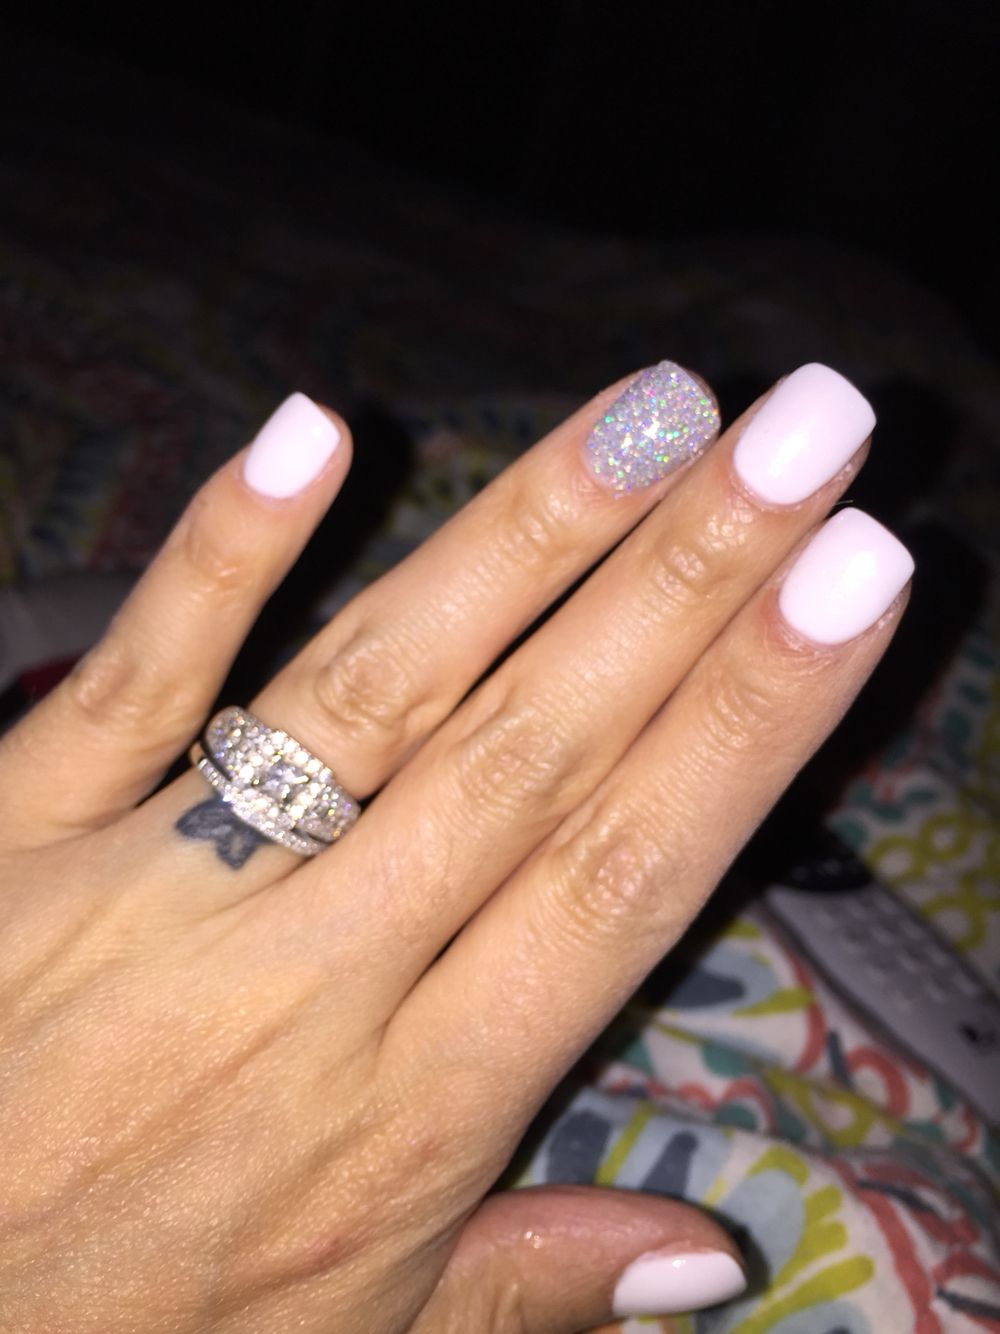 Ahhhhh in lovext color i will get white sns nails fav nail